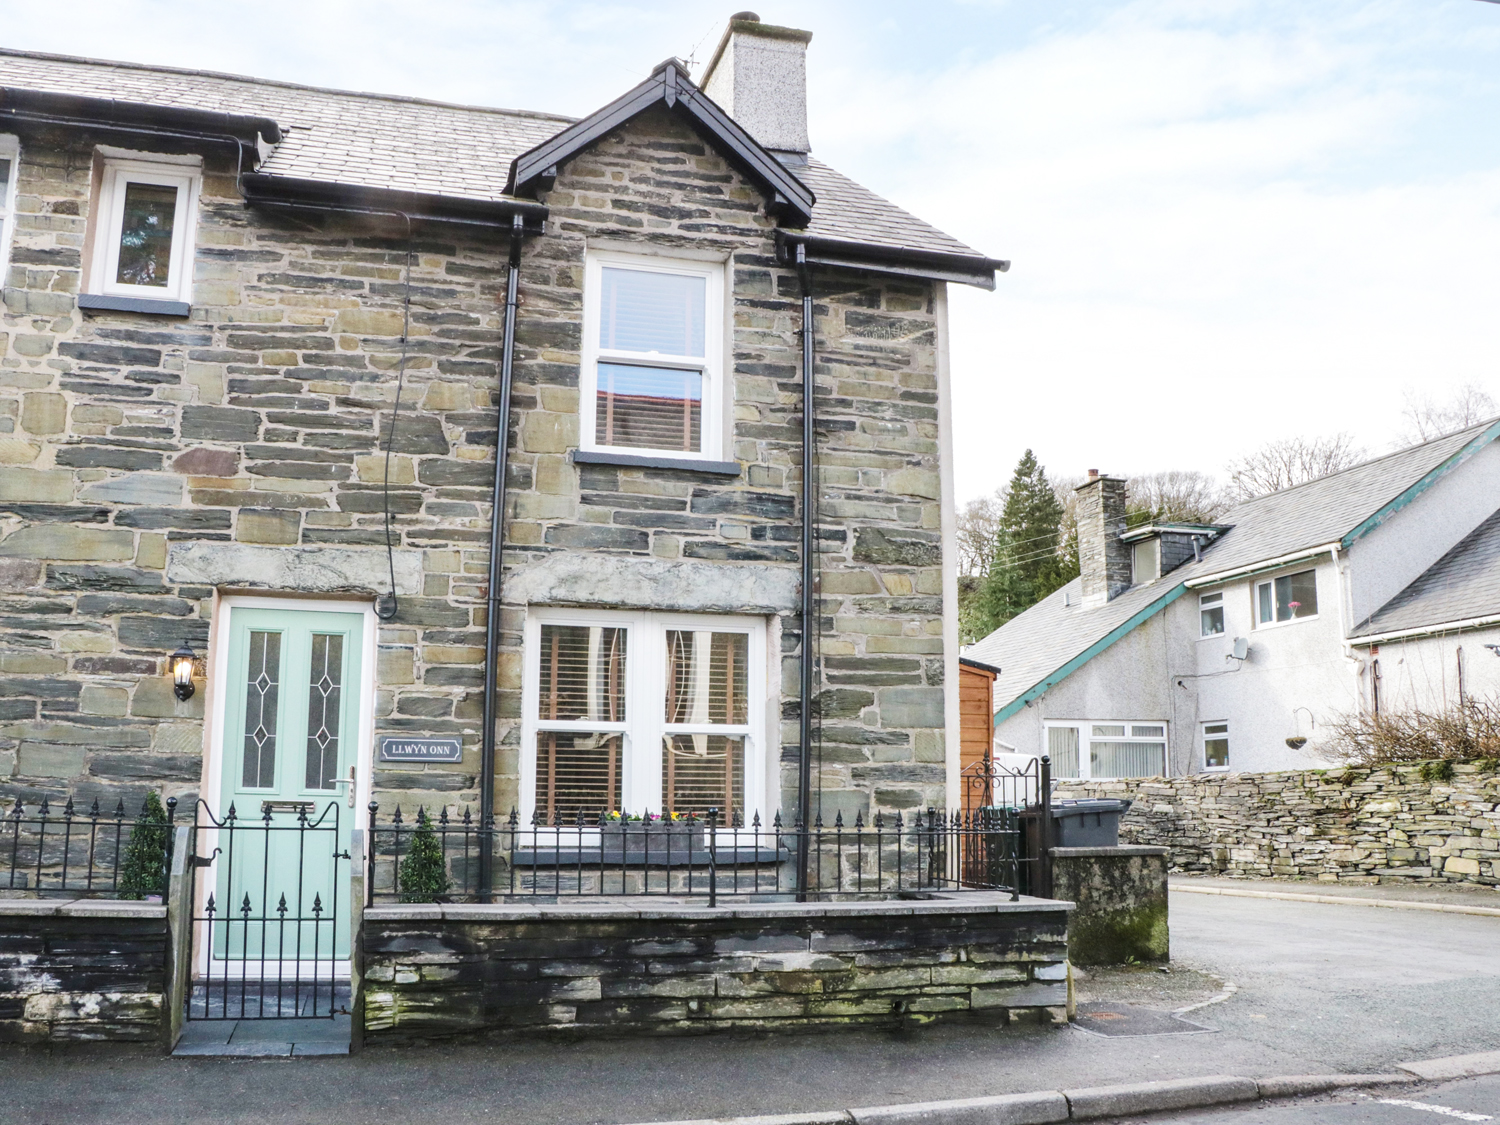 2 bedroom Cottage for rent in Betws-y-Coed